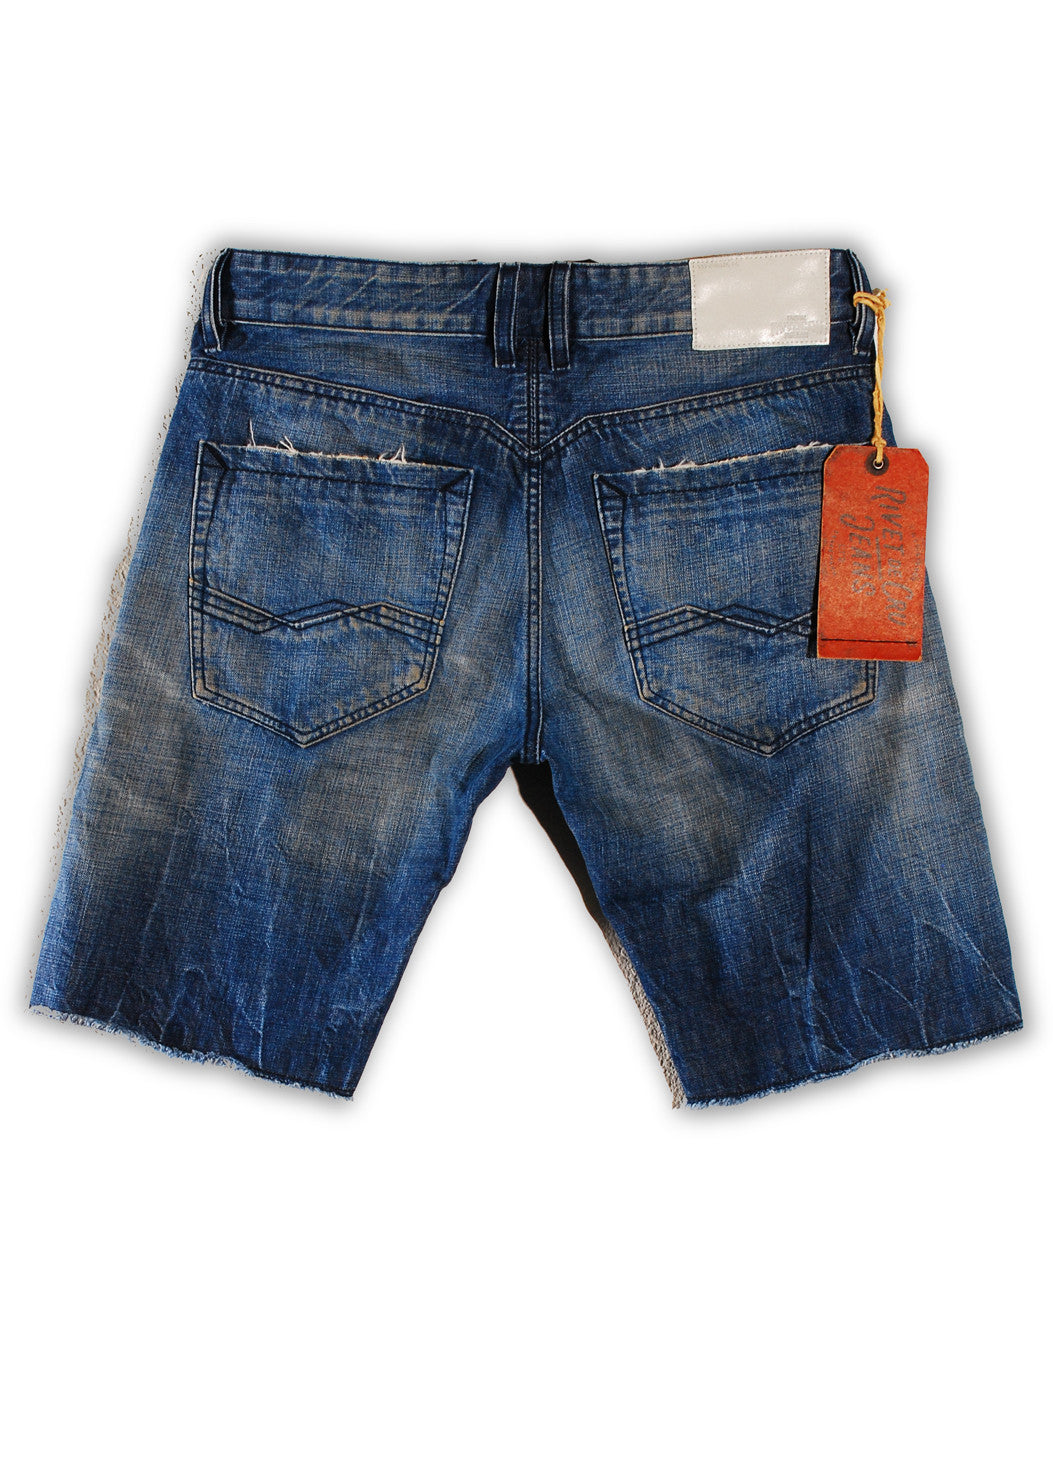 1TS-006 Crown Blue Shorts - Rivet De Cru Jeans - Premium Denim